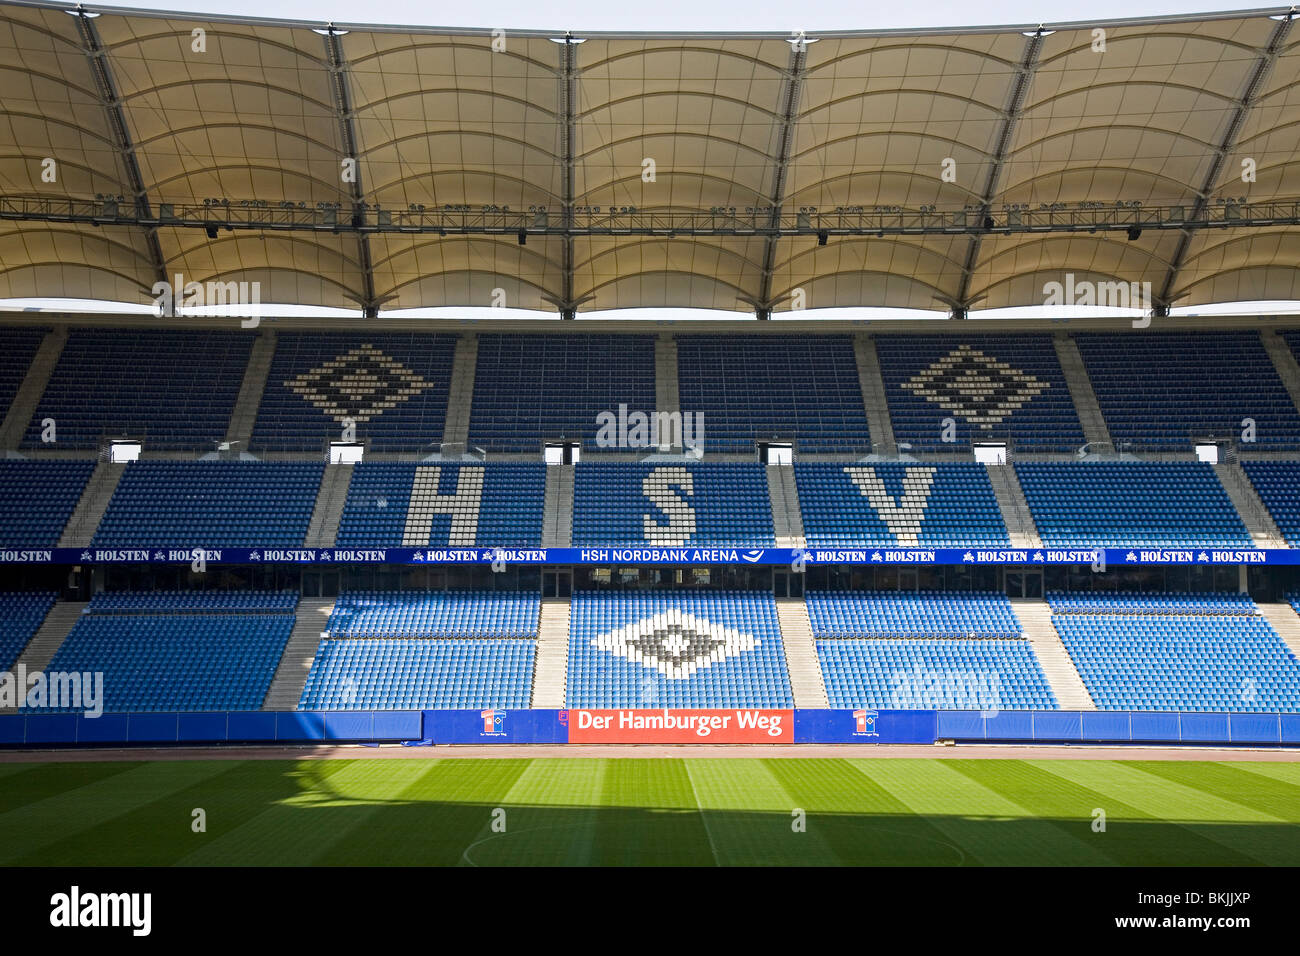 The Hamburg Arena, home stadium of SV Hamburg and the venue for the 2010 UEFA Europa League Final. - Stock Image